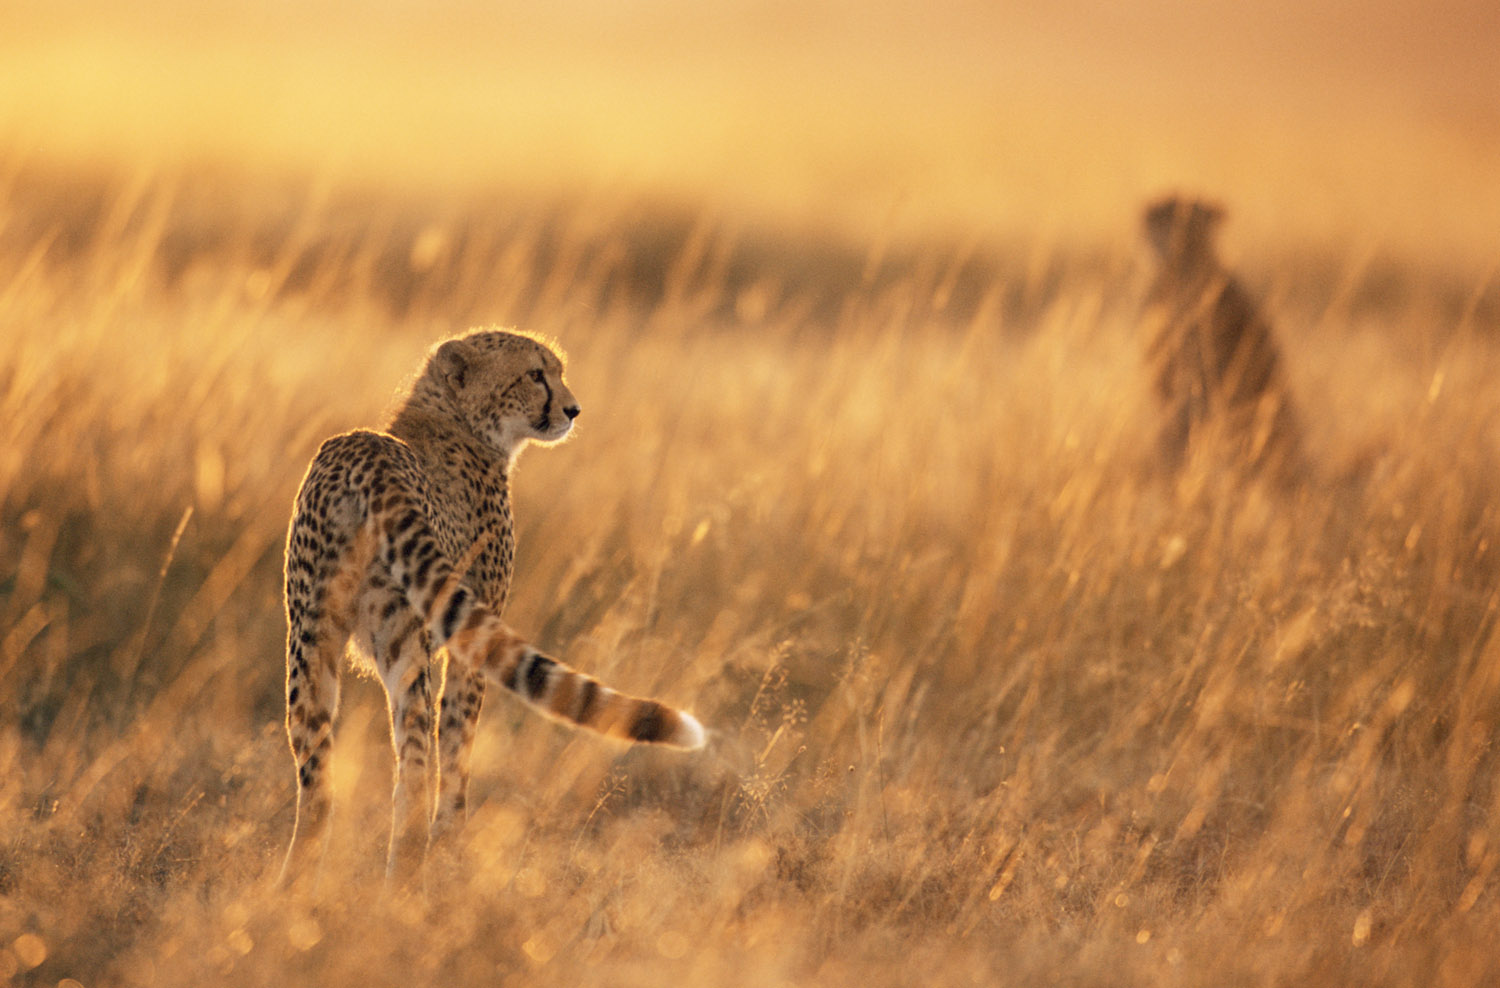 Cheetahs at sunrise, Masai Mara National Reserve, Kenya